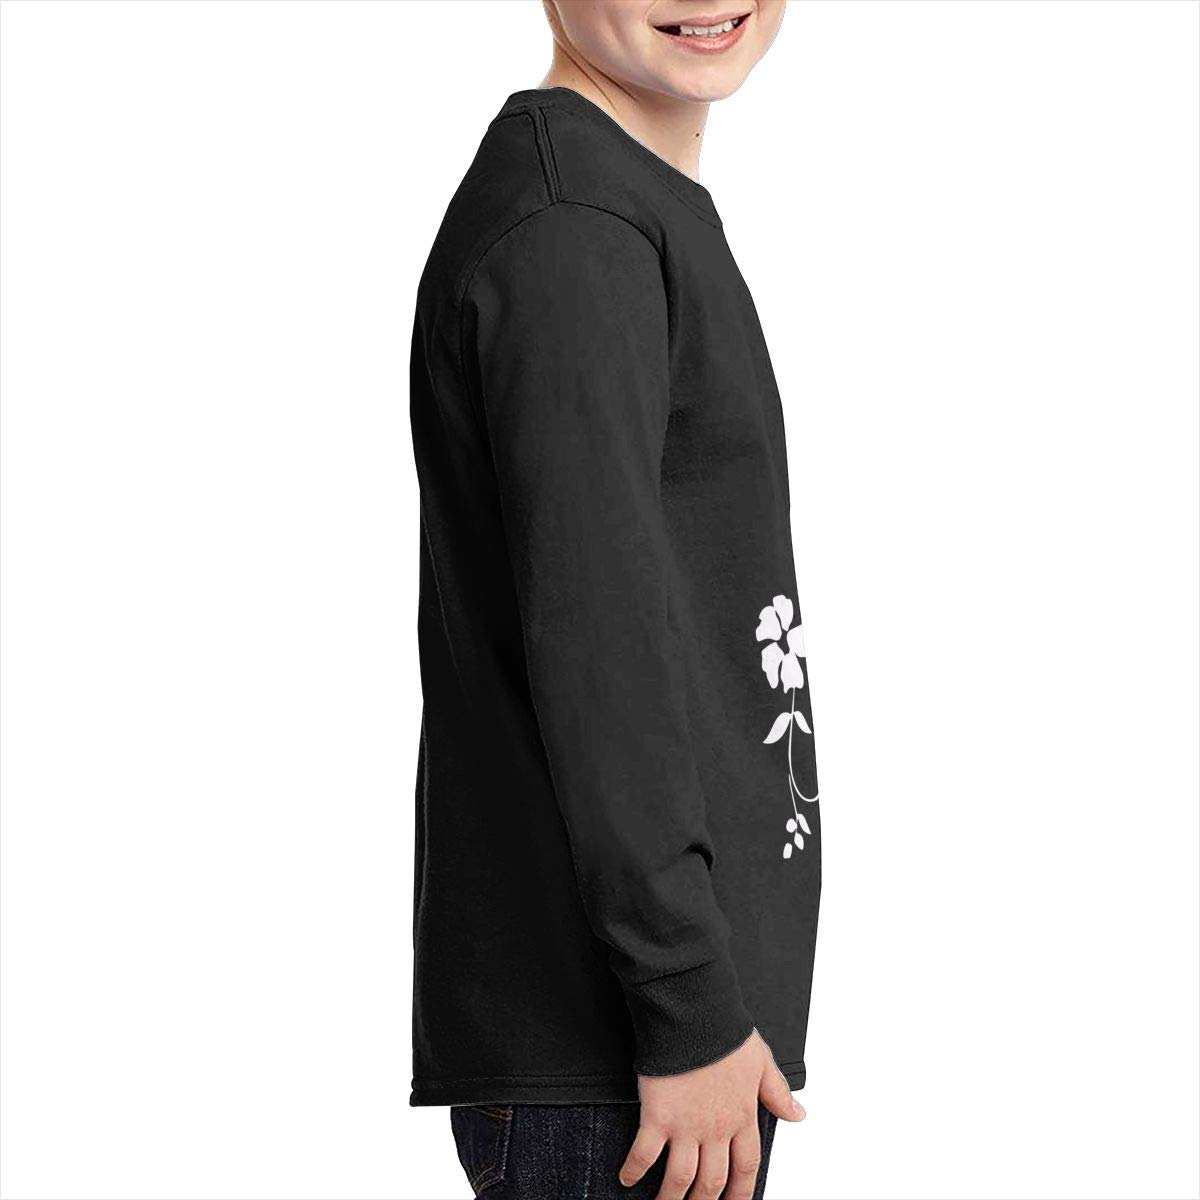 Onlybabycare Pitbull Dog Youth Boy Girl Wicking Pullover Sweatshirt Solid Shirt